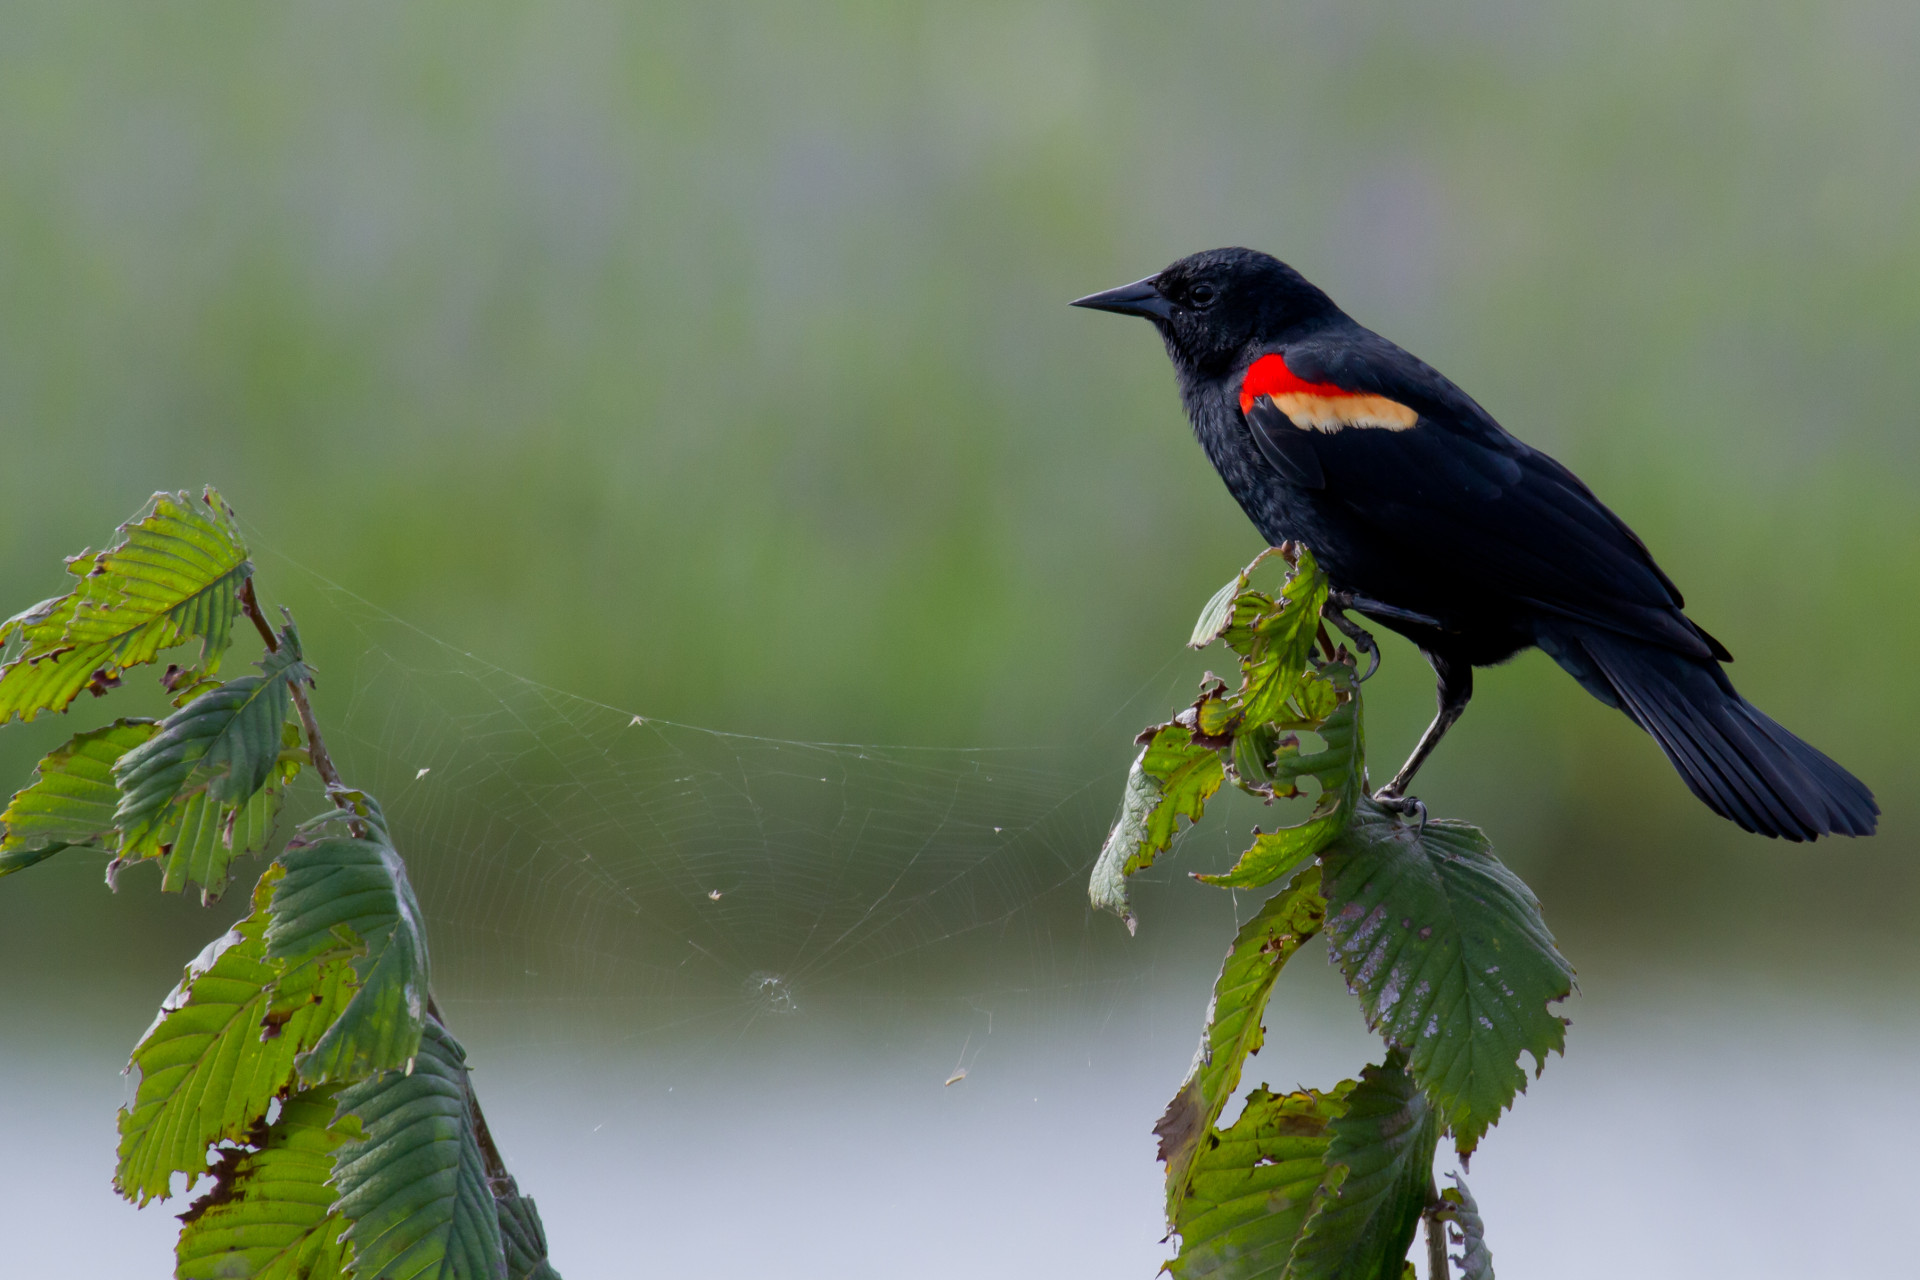 Redwing Blackbird in the Celery Fields